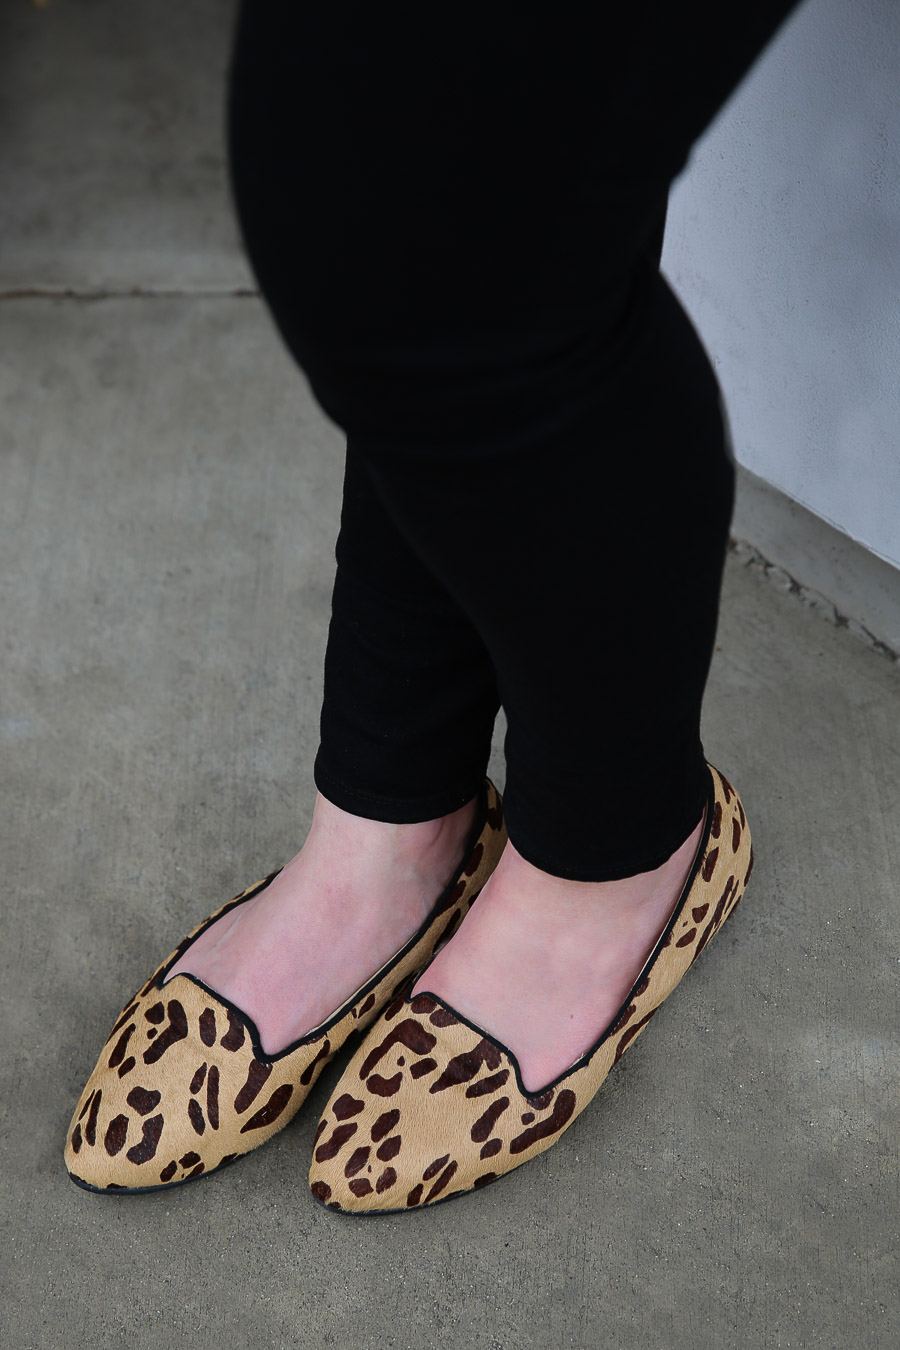 Leopard Flats Outfit - Cute Pregnancy Outfit